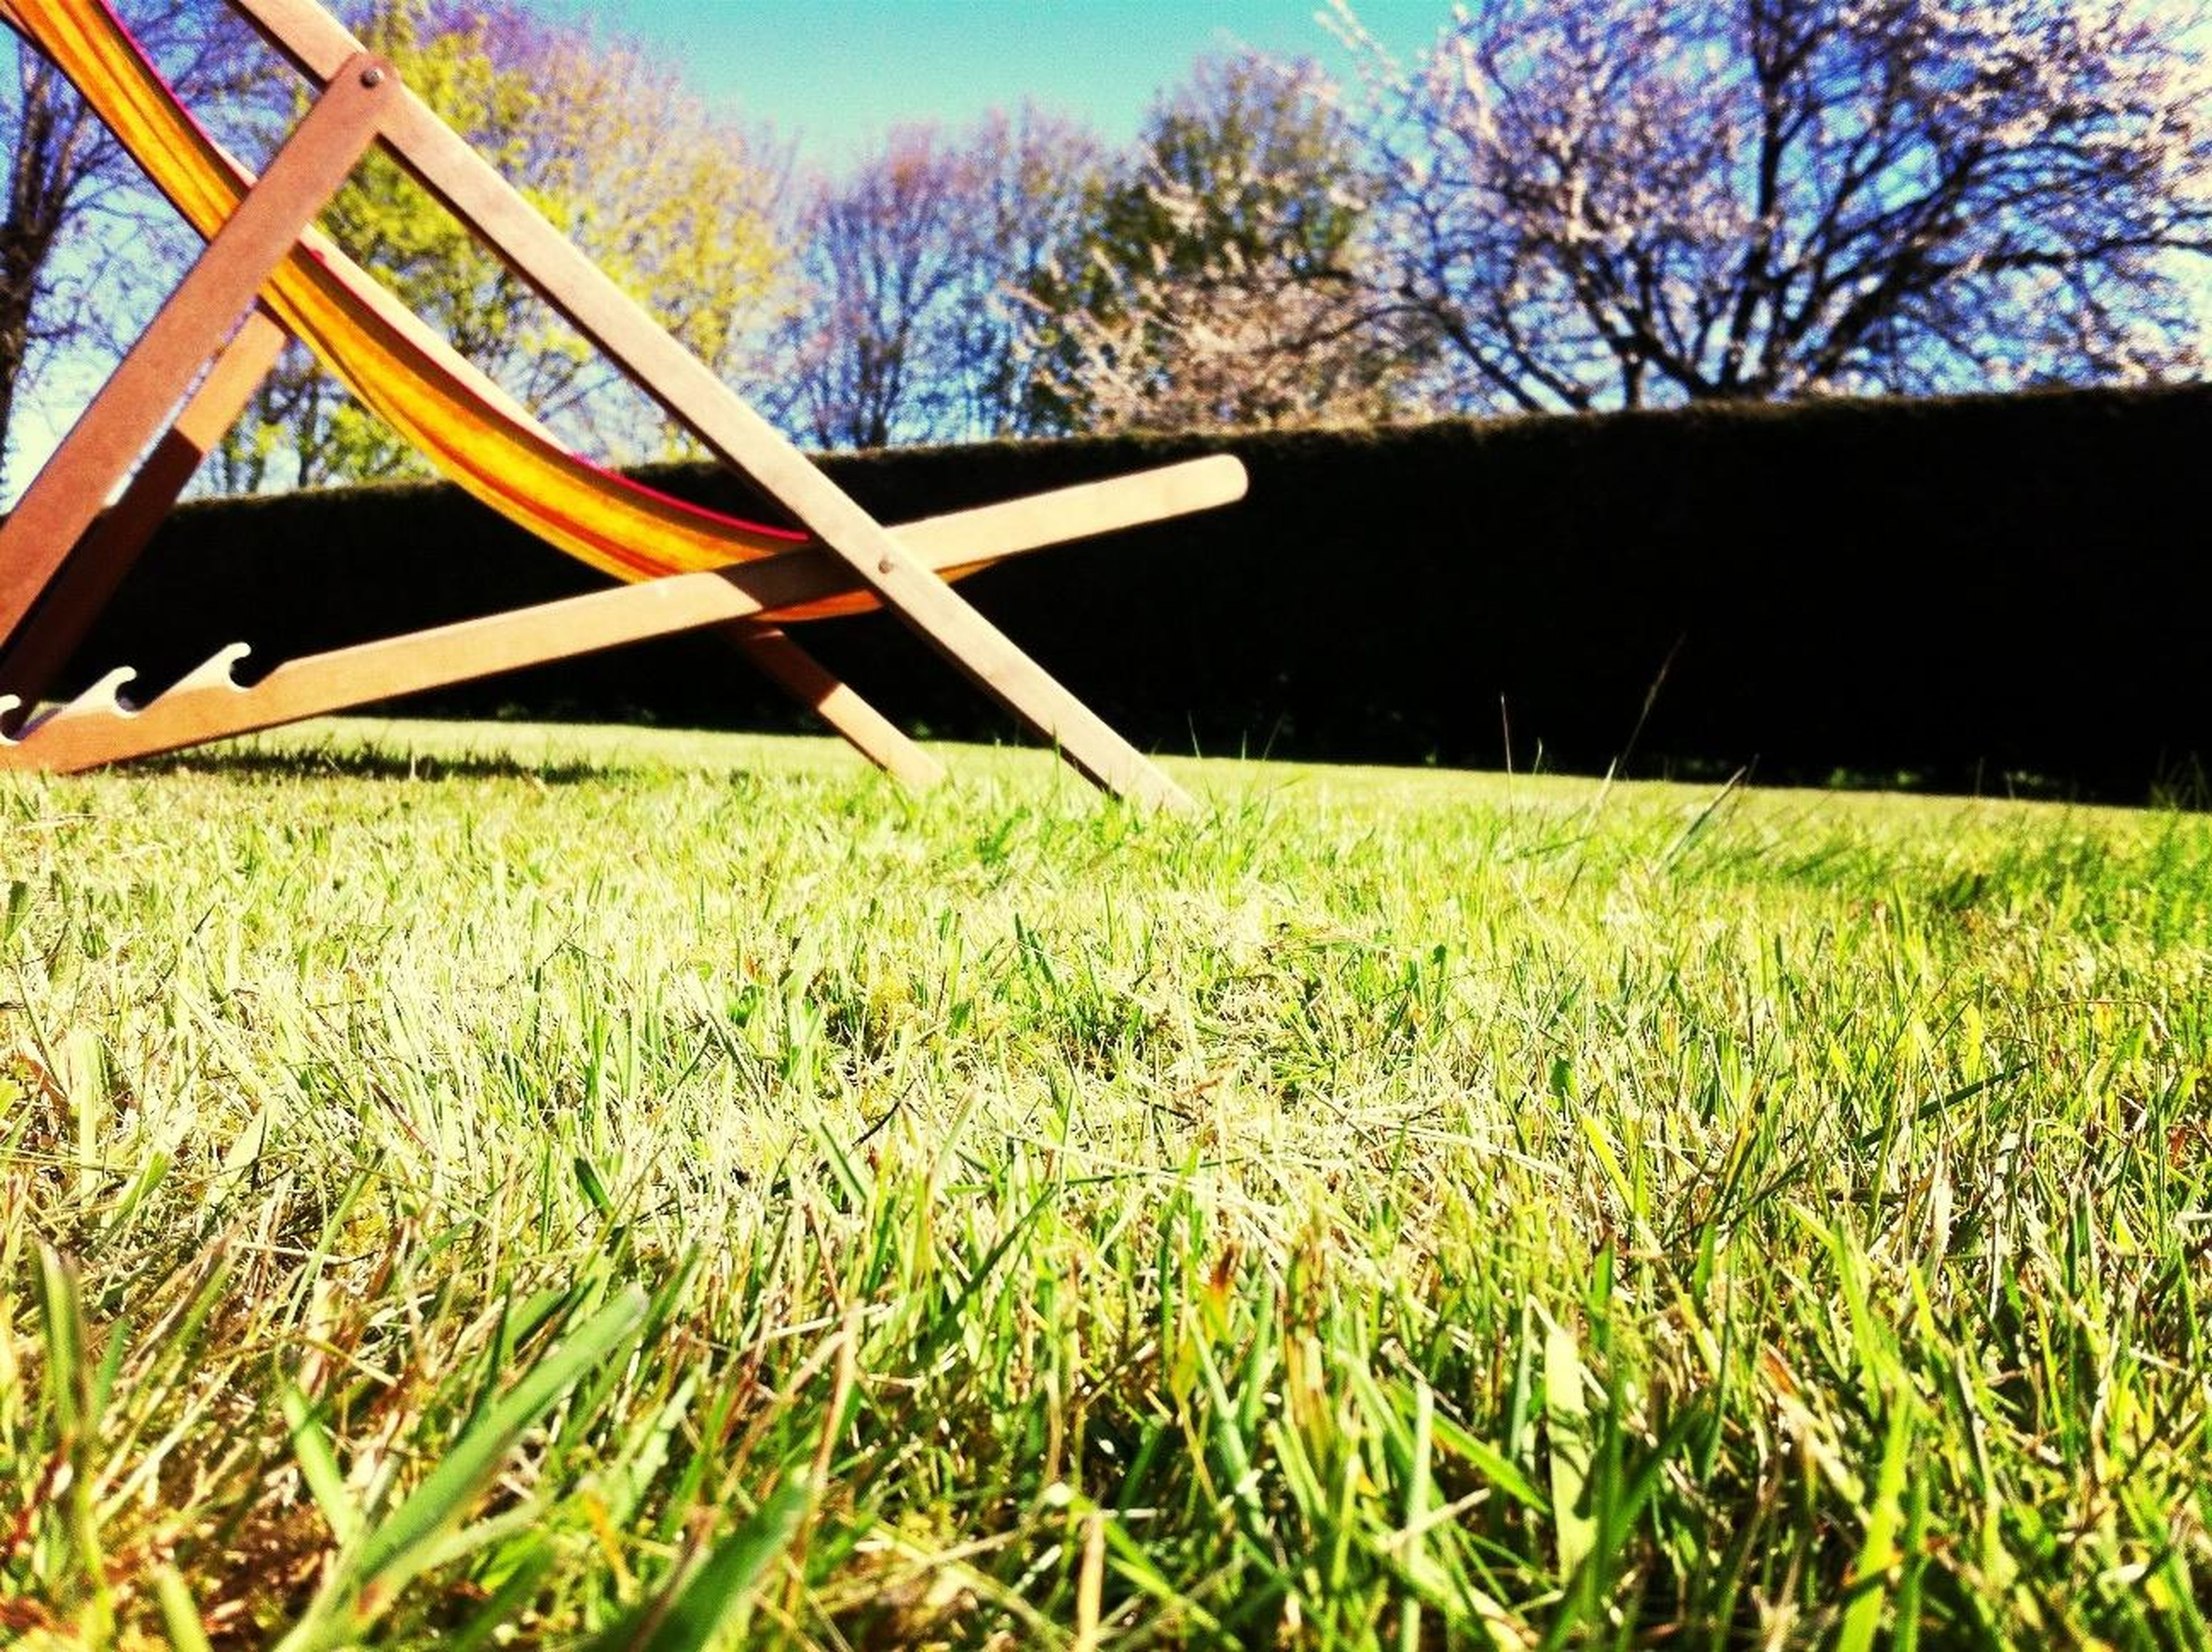 grass, field, tree, growth, grassy, green color, nature, plant, sky, tranquility, sunlight, day, outdoors, no people, park - man made space, built structure, close-up, lawn, branch, fence